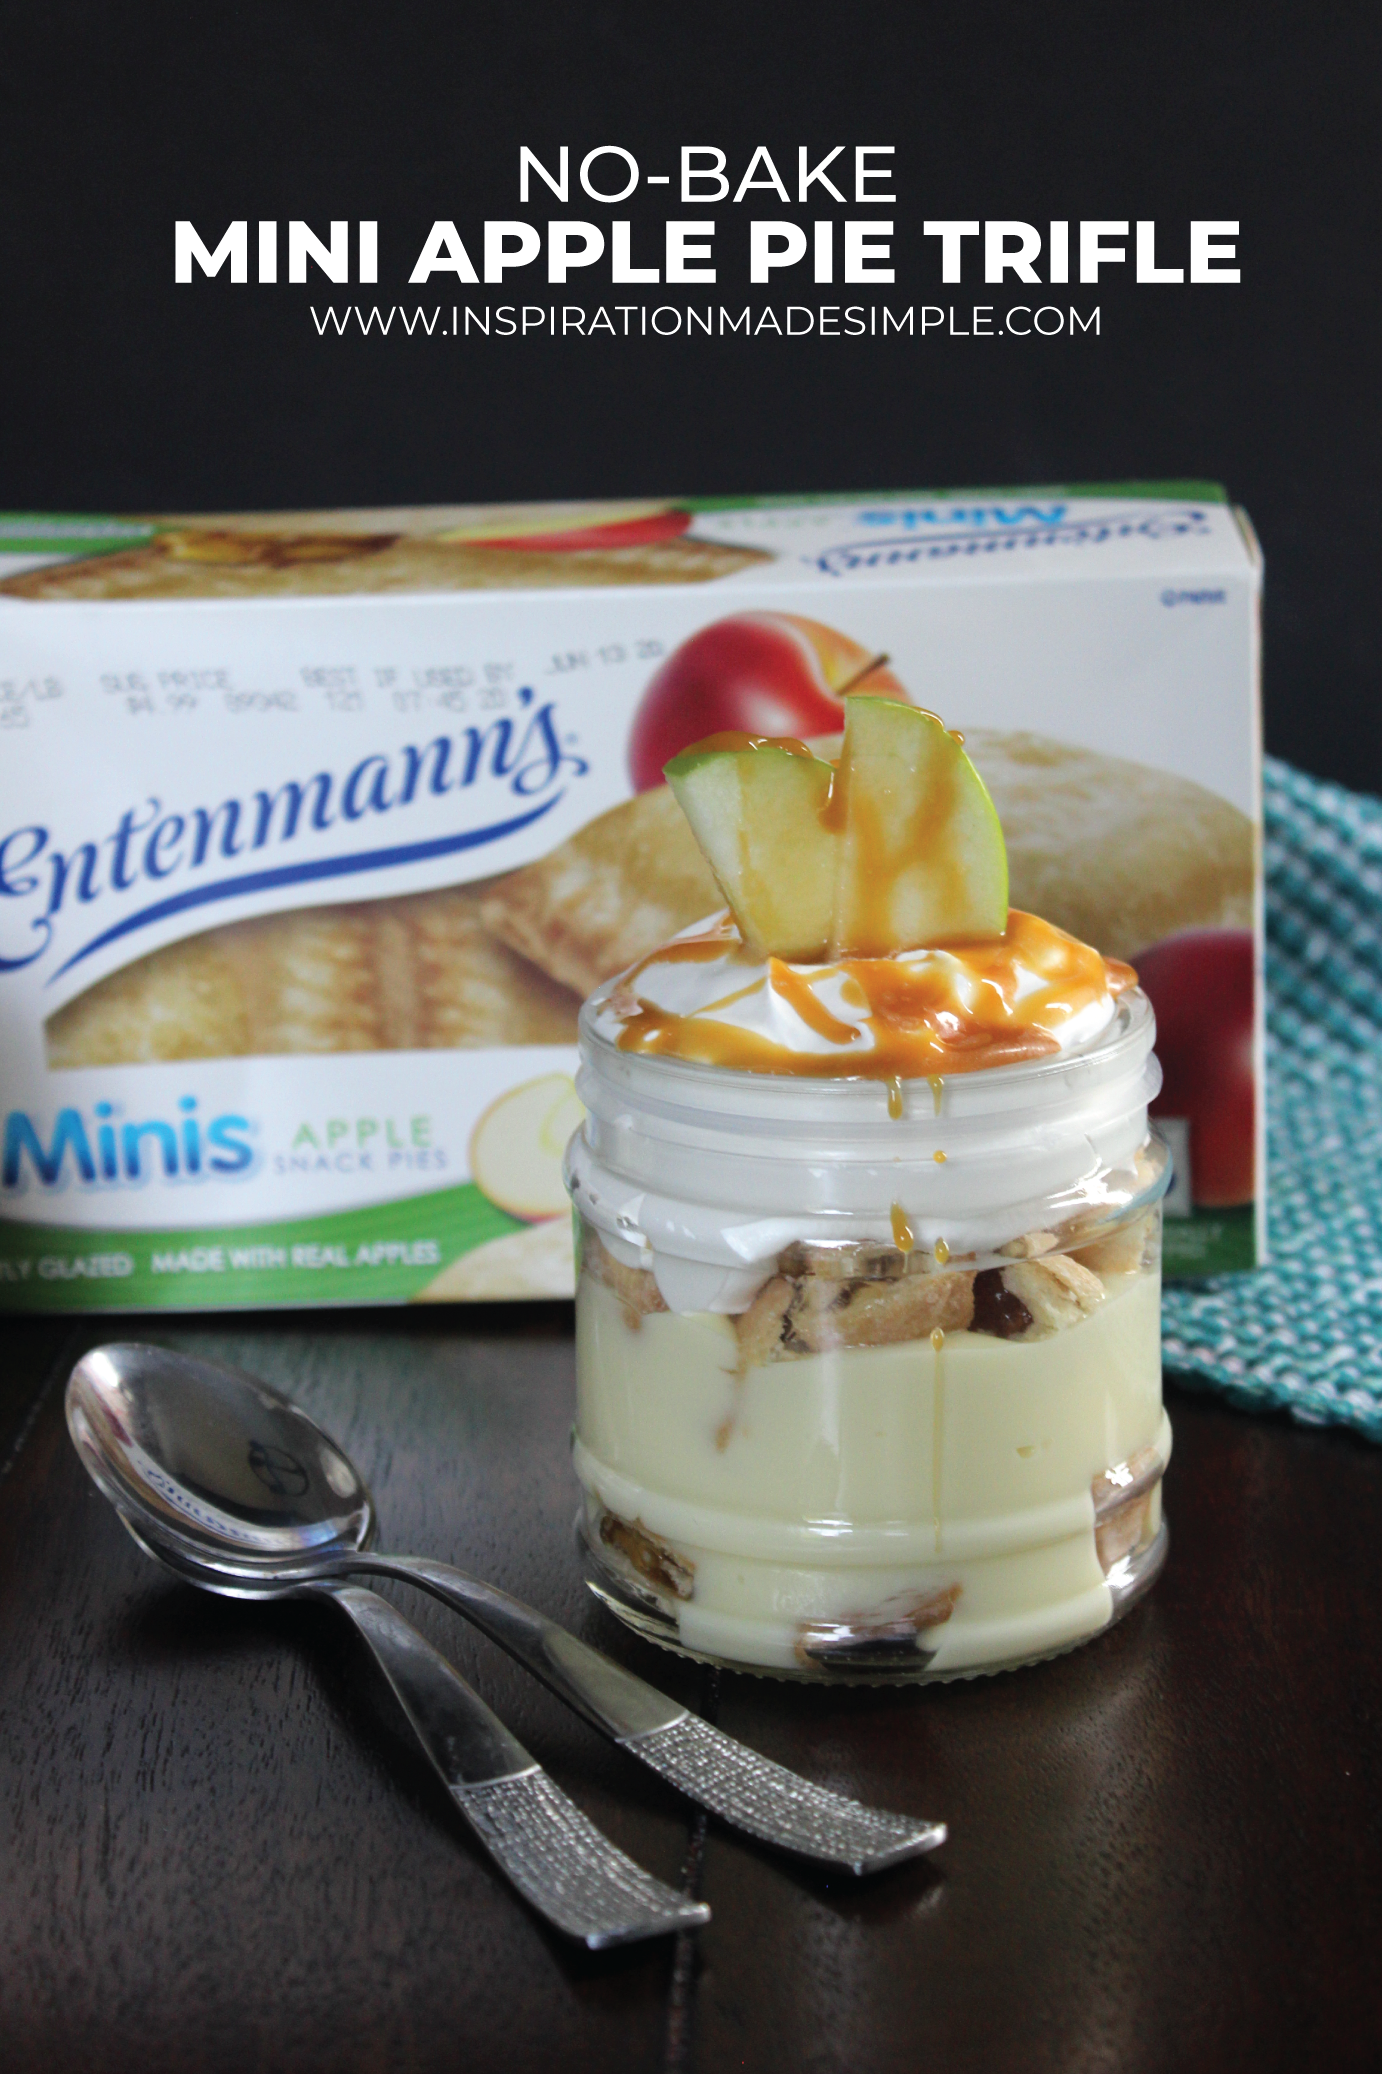 No-Bake Mini Apple Pie Trifle with Entenmann's® Minis Apple Snack Pies